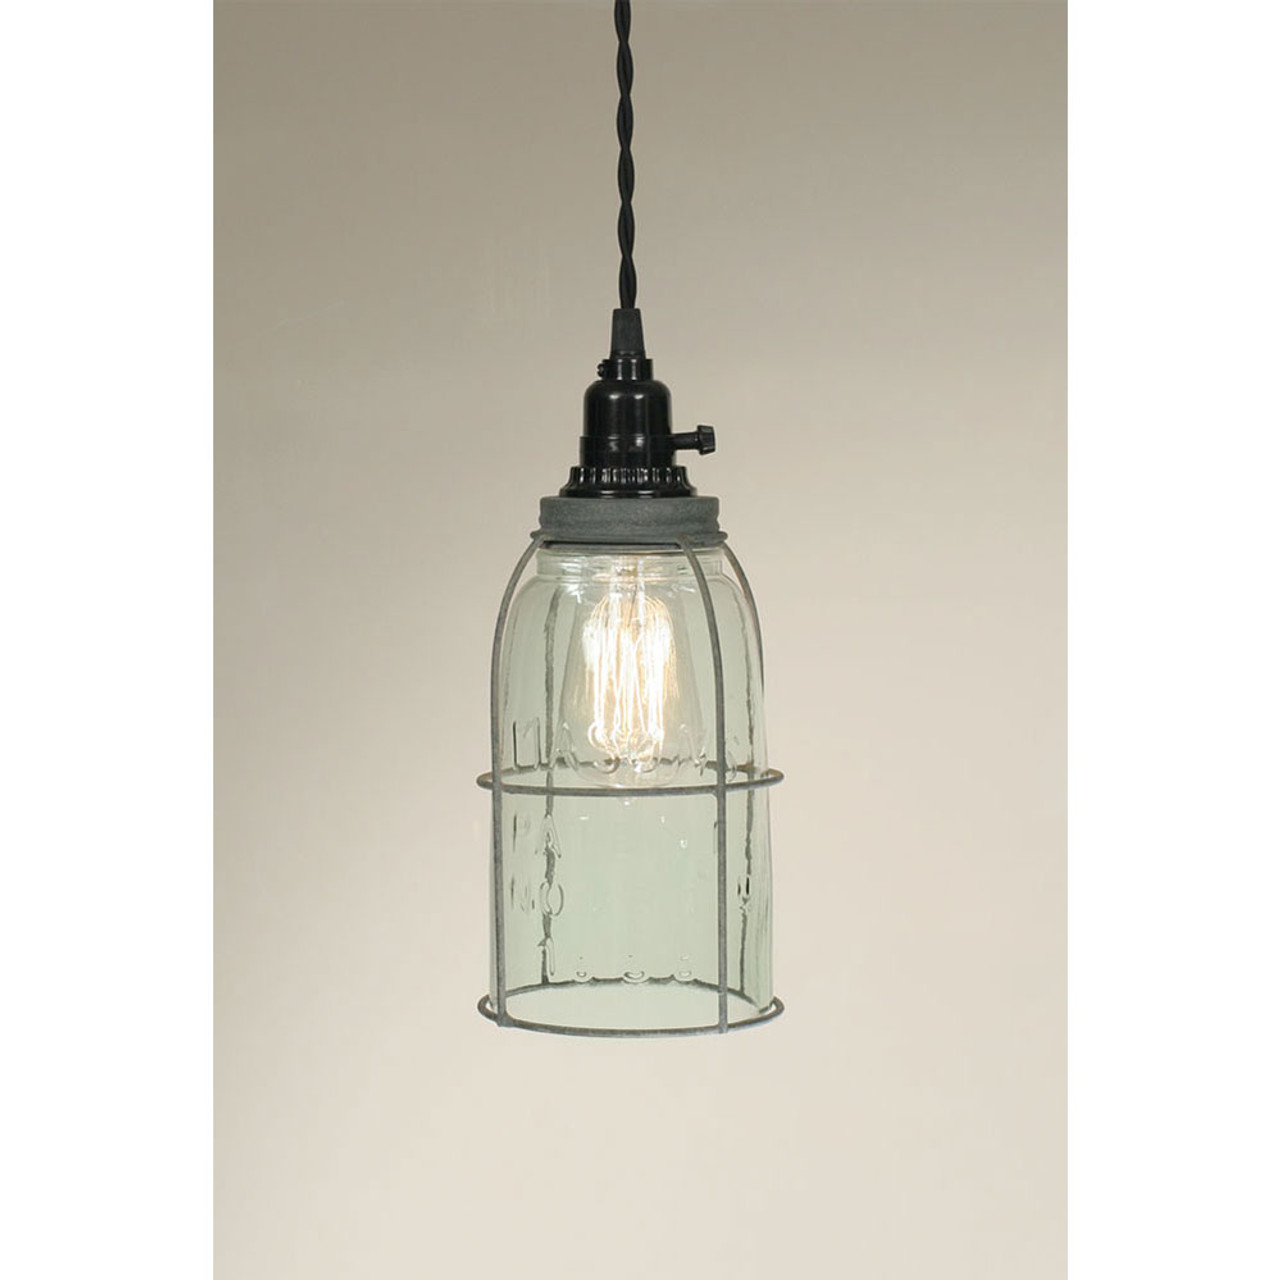 Farmhouse Mason Jar Pendant Lamp with Industrial Cage -Hanging